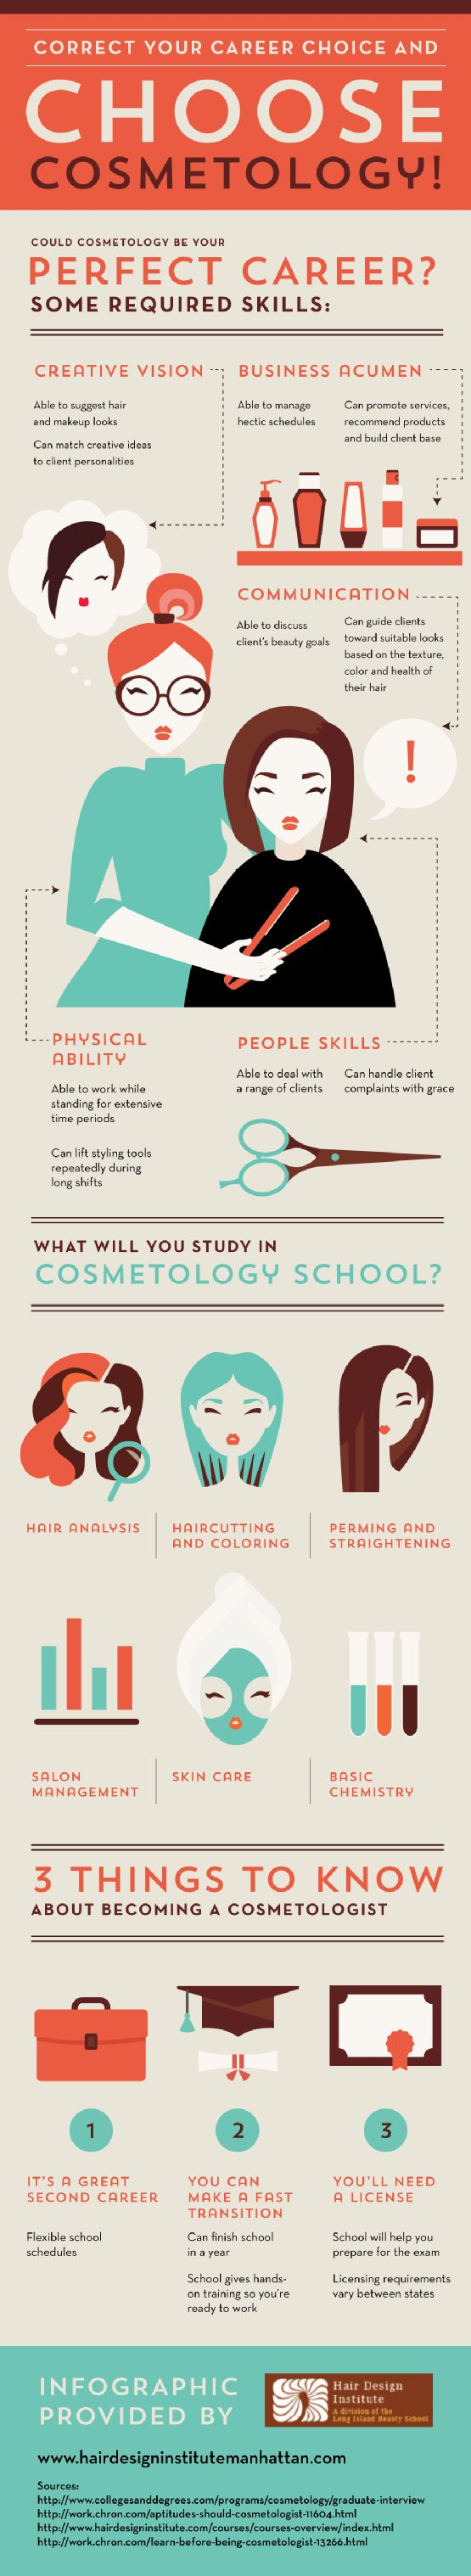 Cosmetologists must be able to manage hectic schedules! These professionals should also know how to promote services and recommend products to clients. Learn more about entering the beauty industry by reading through this infographic from a cosmetology school in Manhattan.